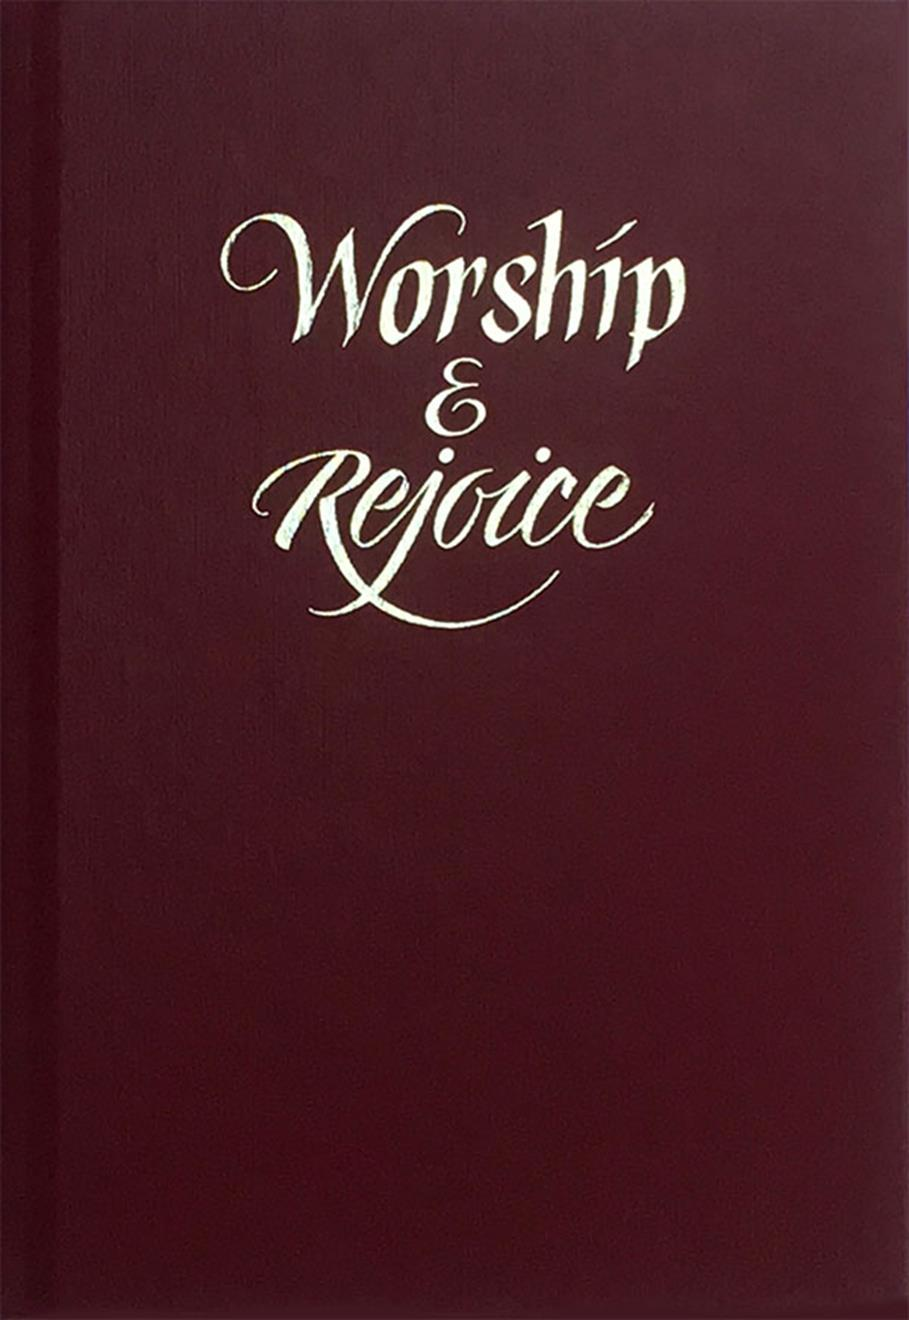 Worship and Rejoice - Red Cover Image